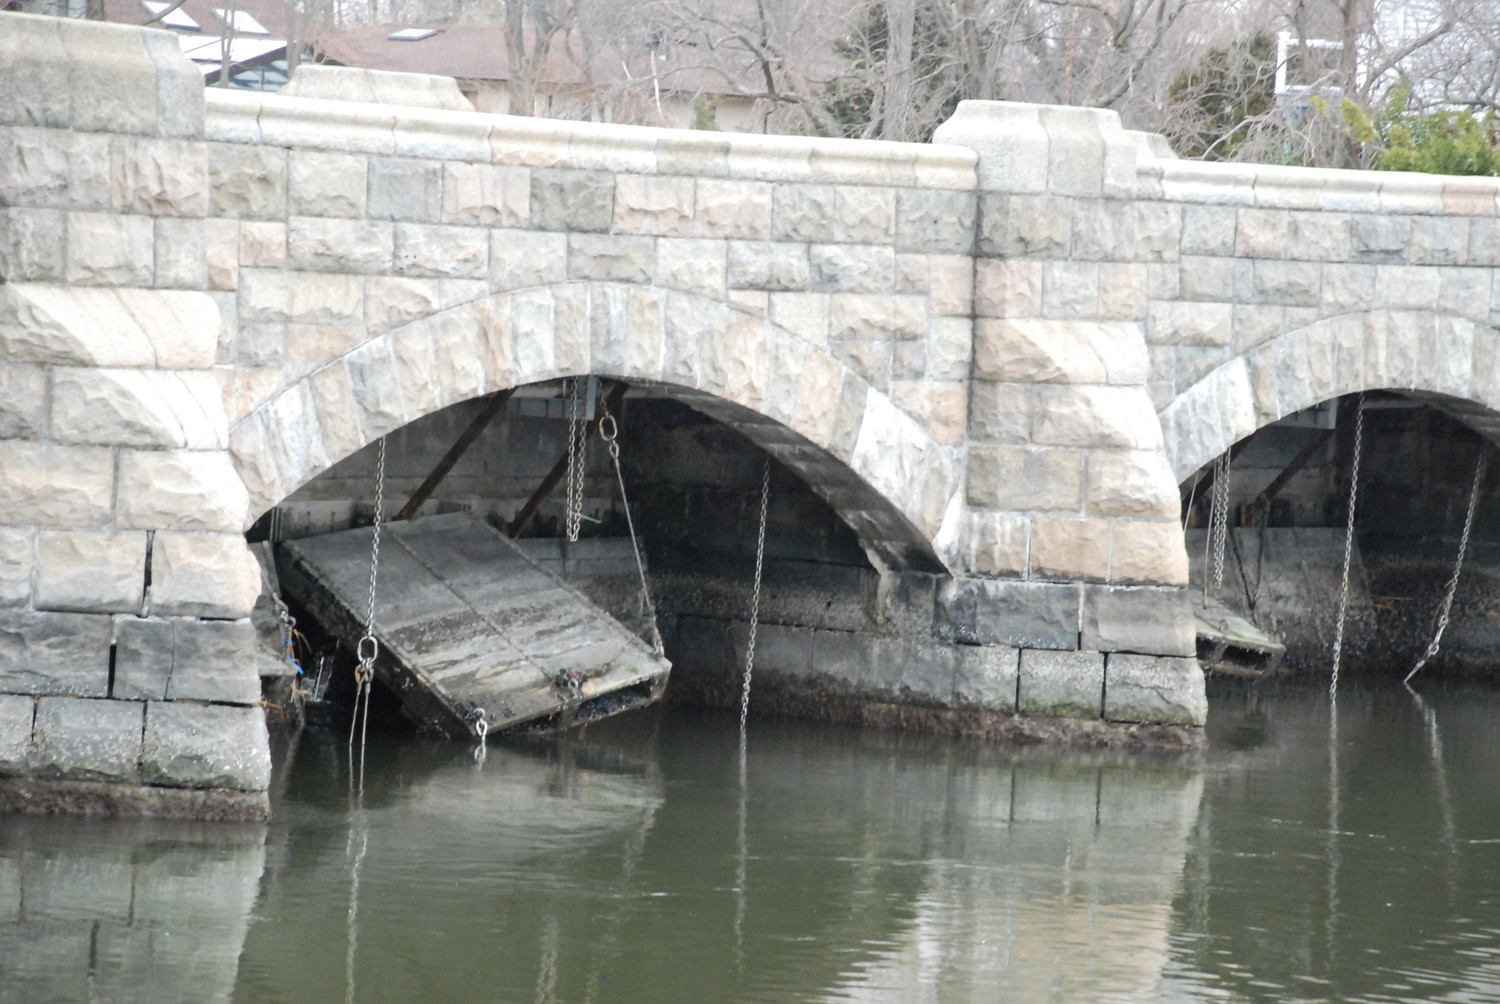 One of the broken tidal gates under the East Island Bridge over Dosoris Pond, which for decades has been failing to properly regulate flow between the pond and the Long Island Sound.